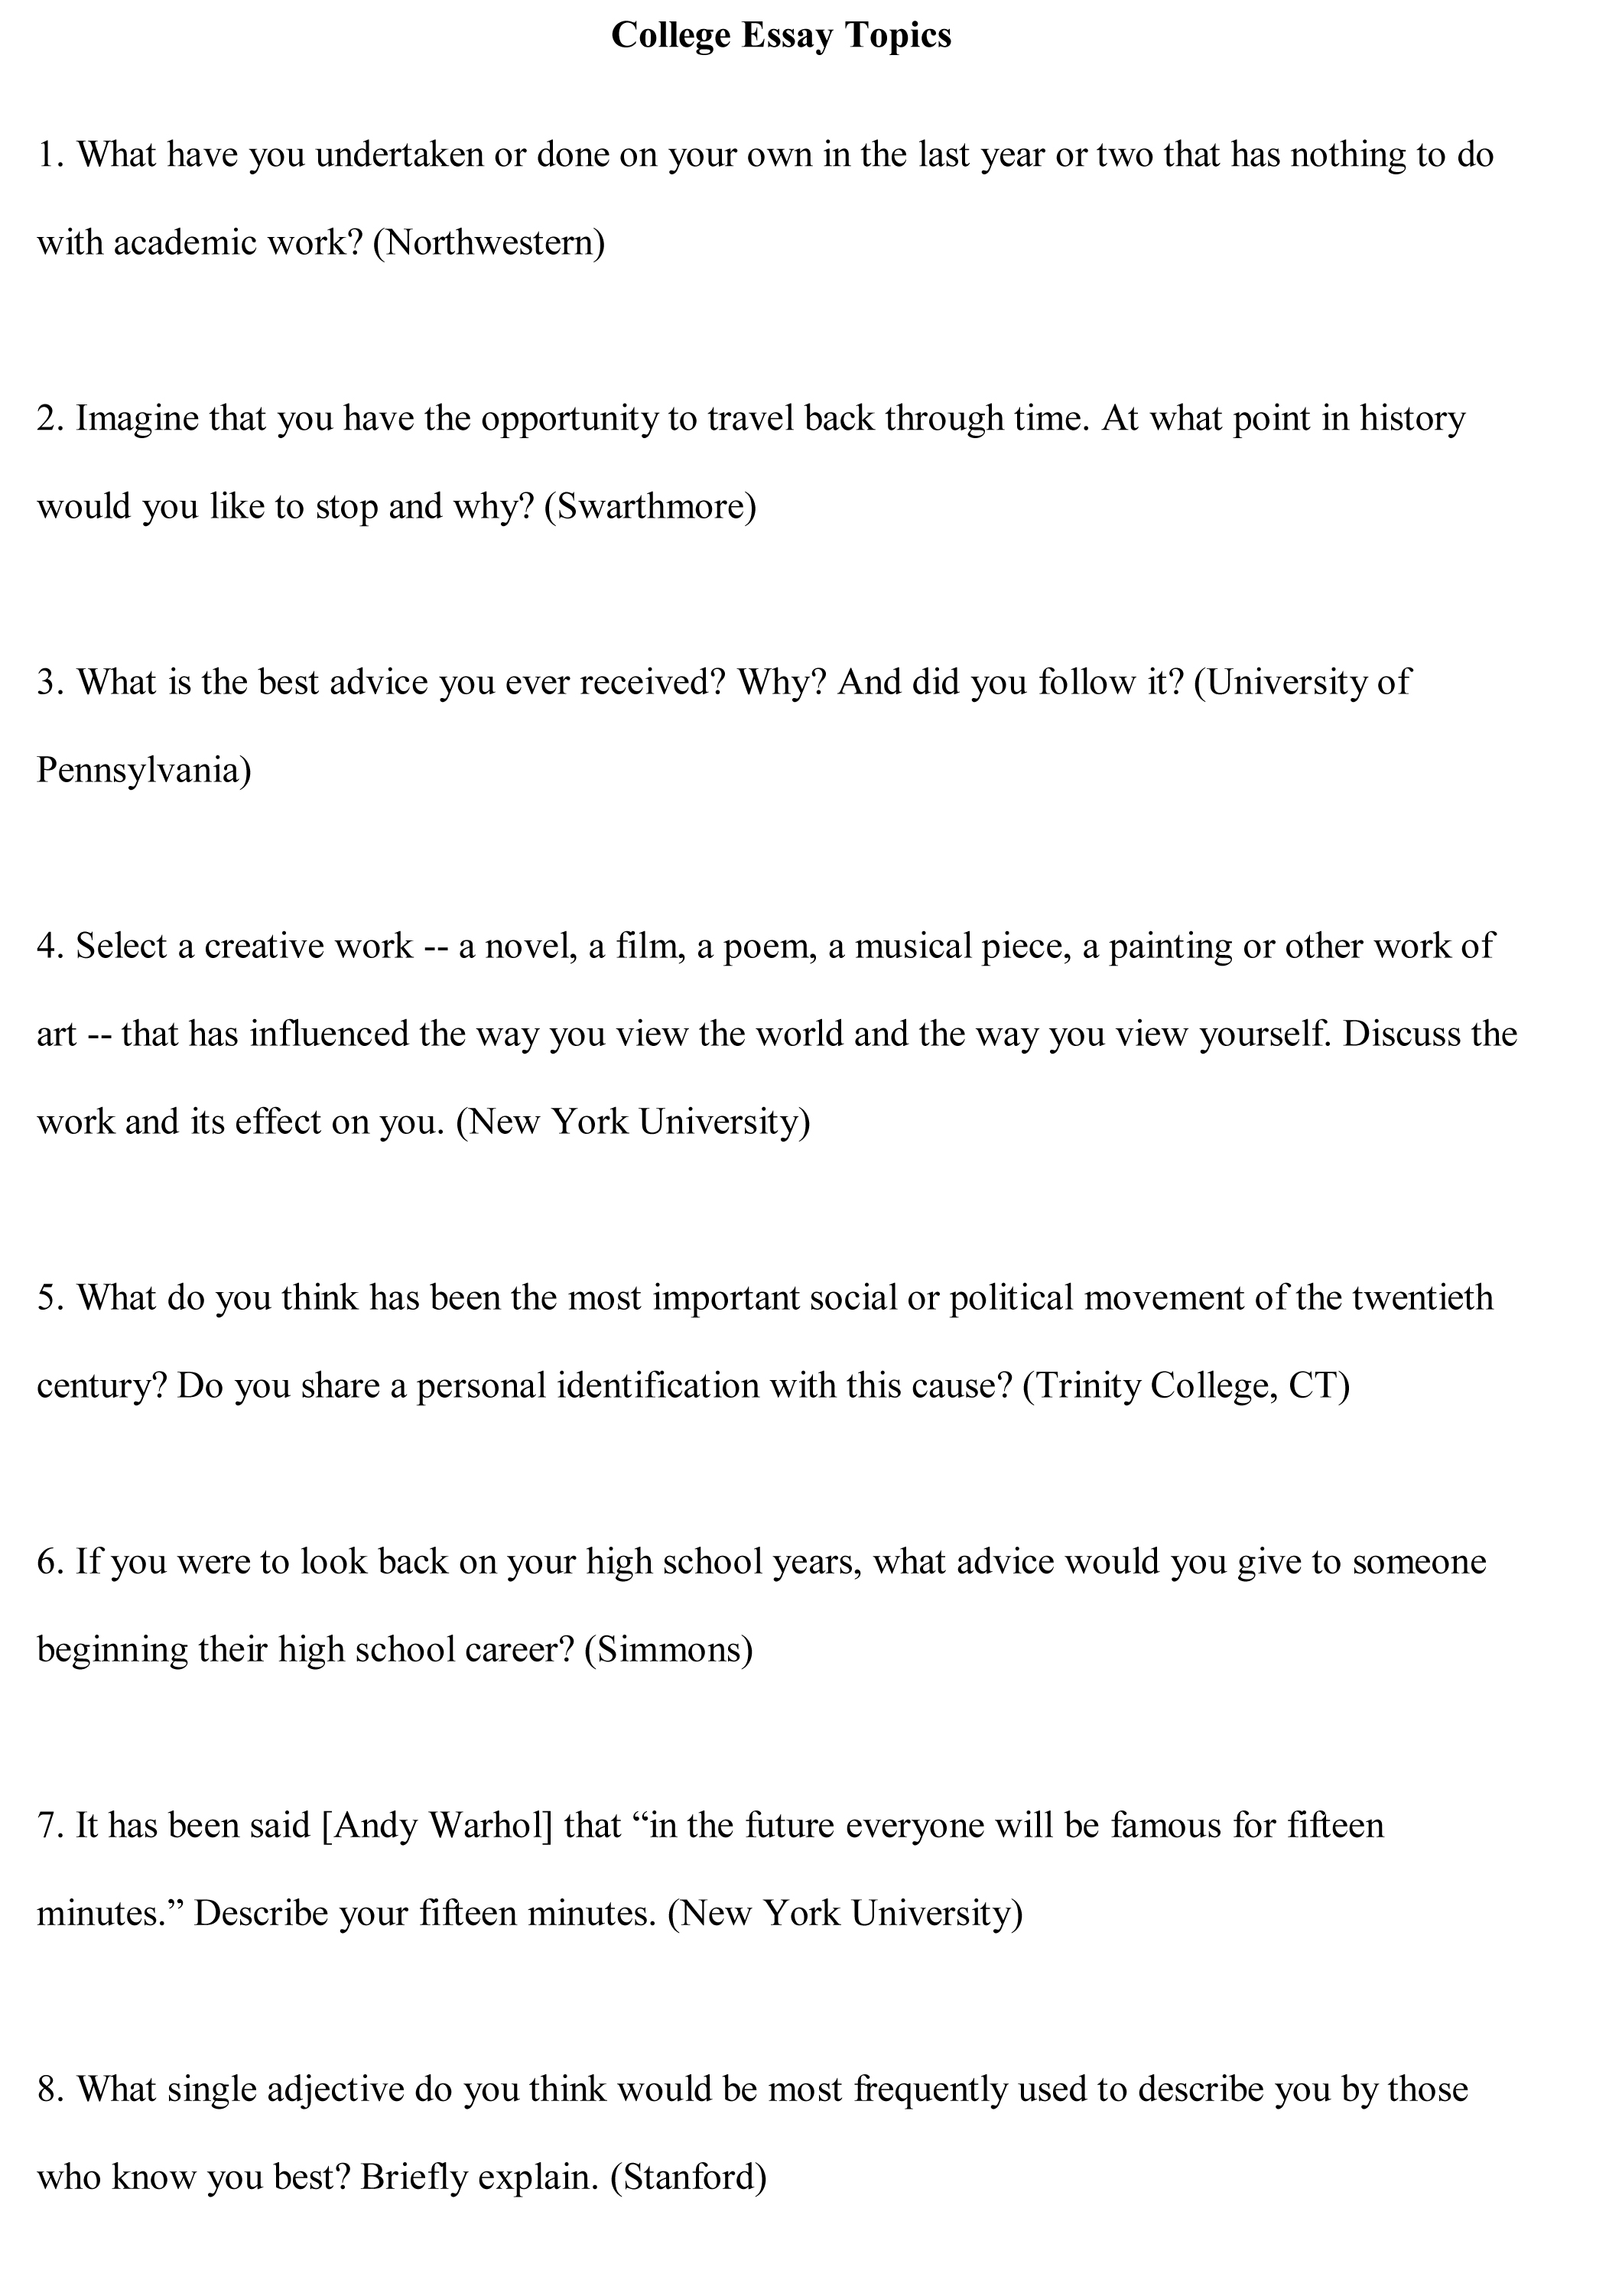 014 Essay Topics College Free Sample1 Archaicawful Writing For 6th Graders List Ielts Prompts 5th Full